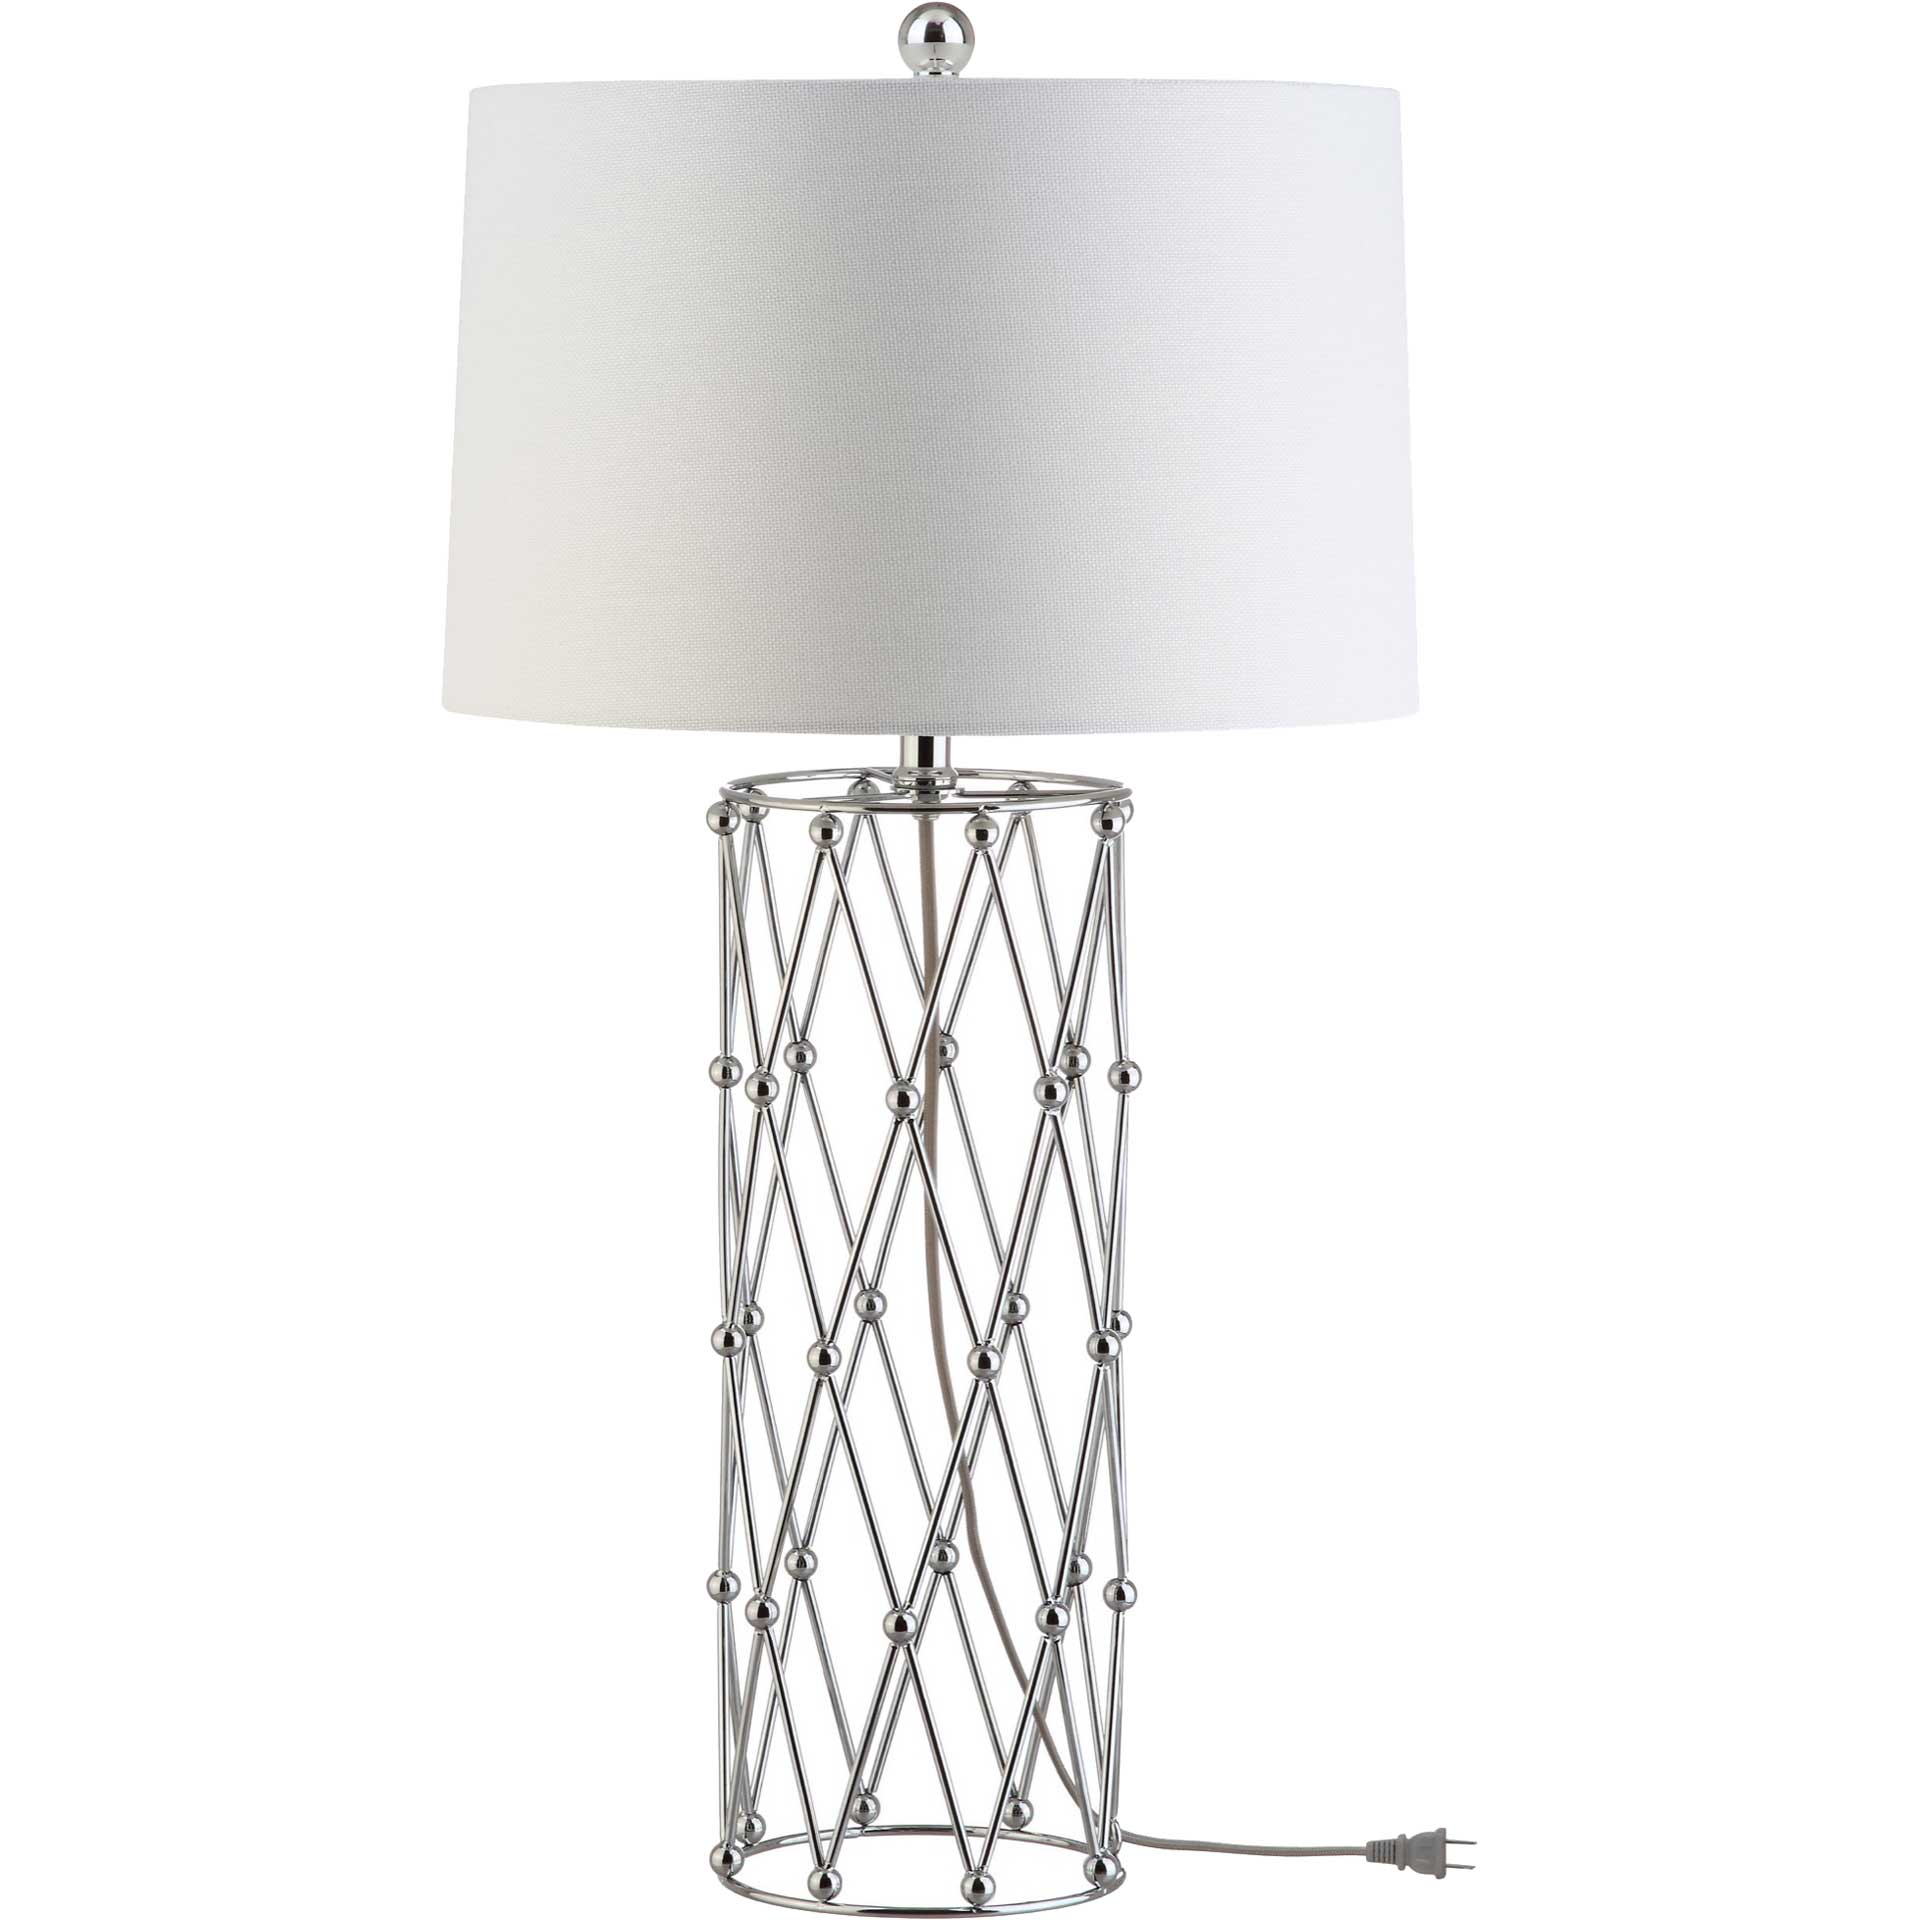 Lizbeth Table Lamp Silver